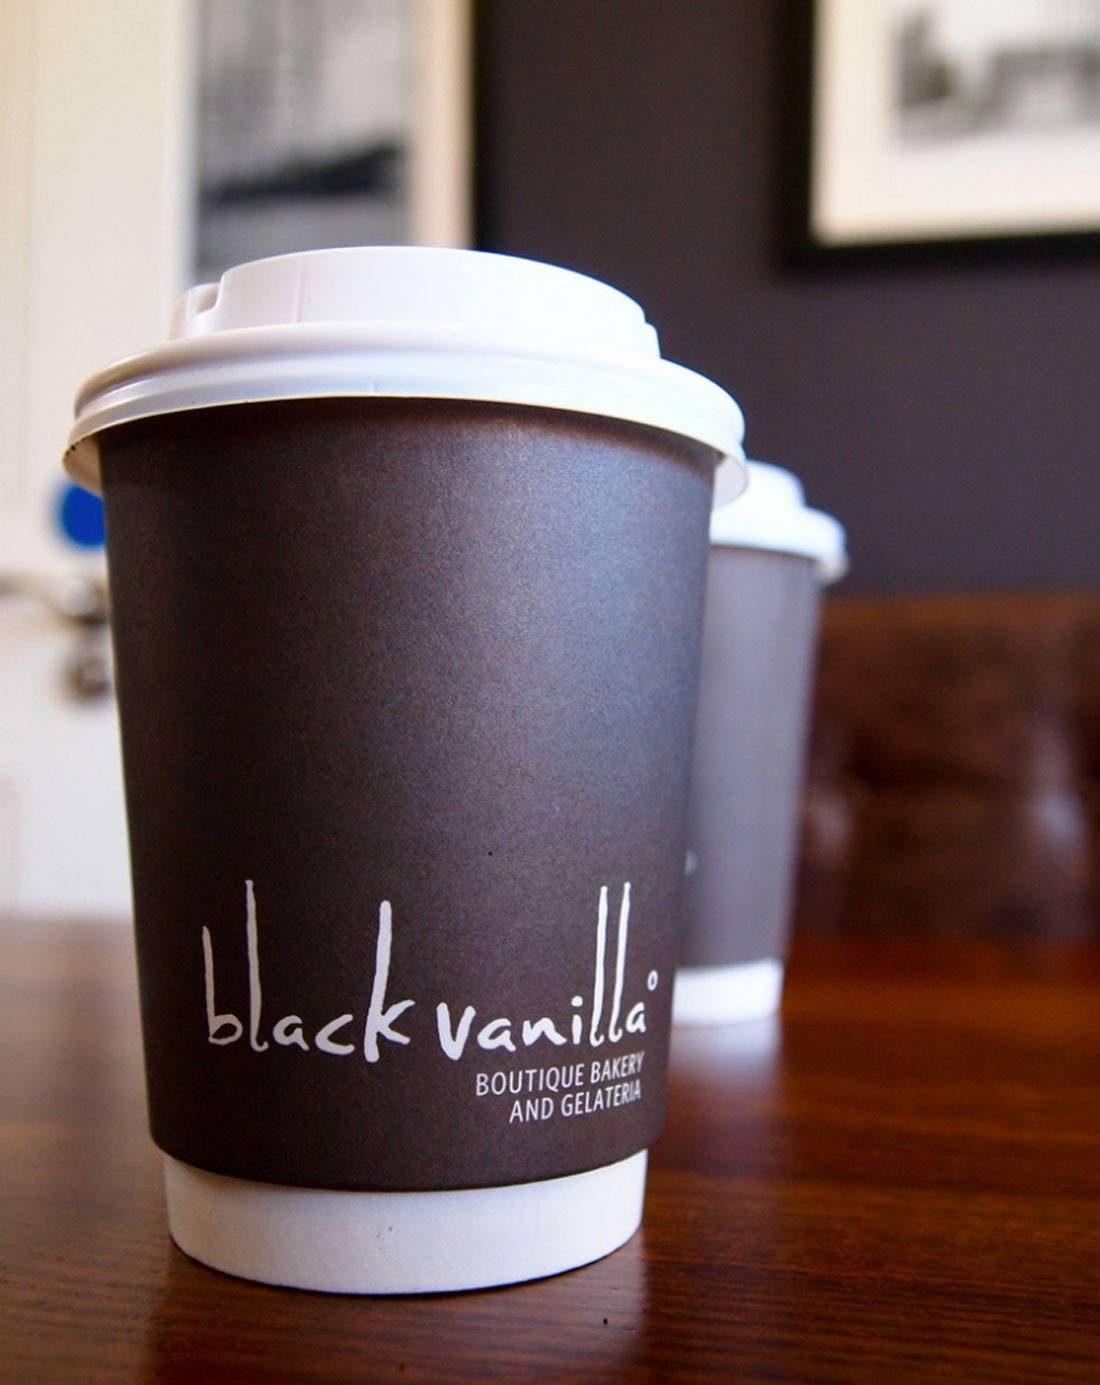 BlackVanilla-Logo-Takeaway-Coffee-Cup